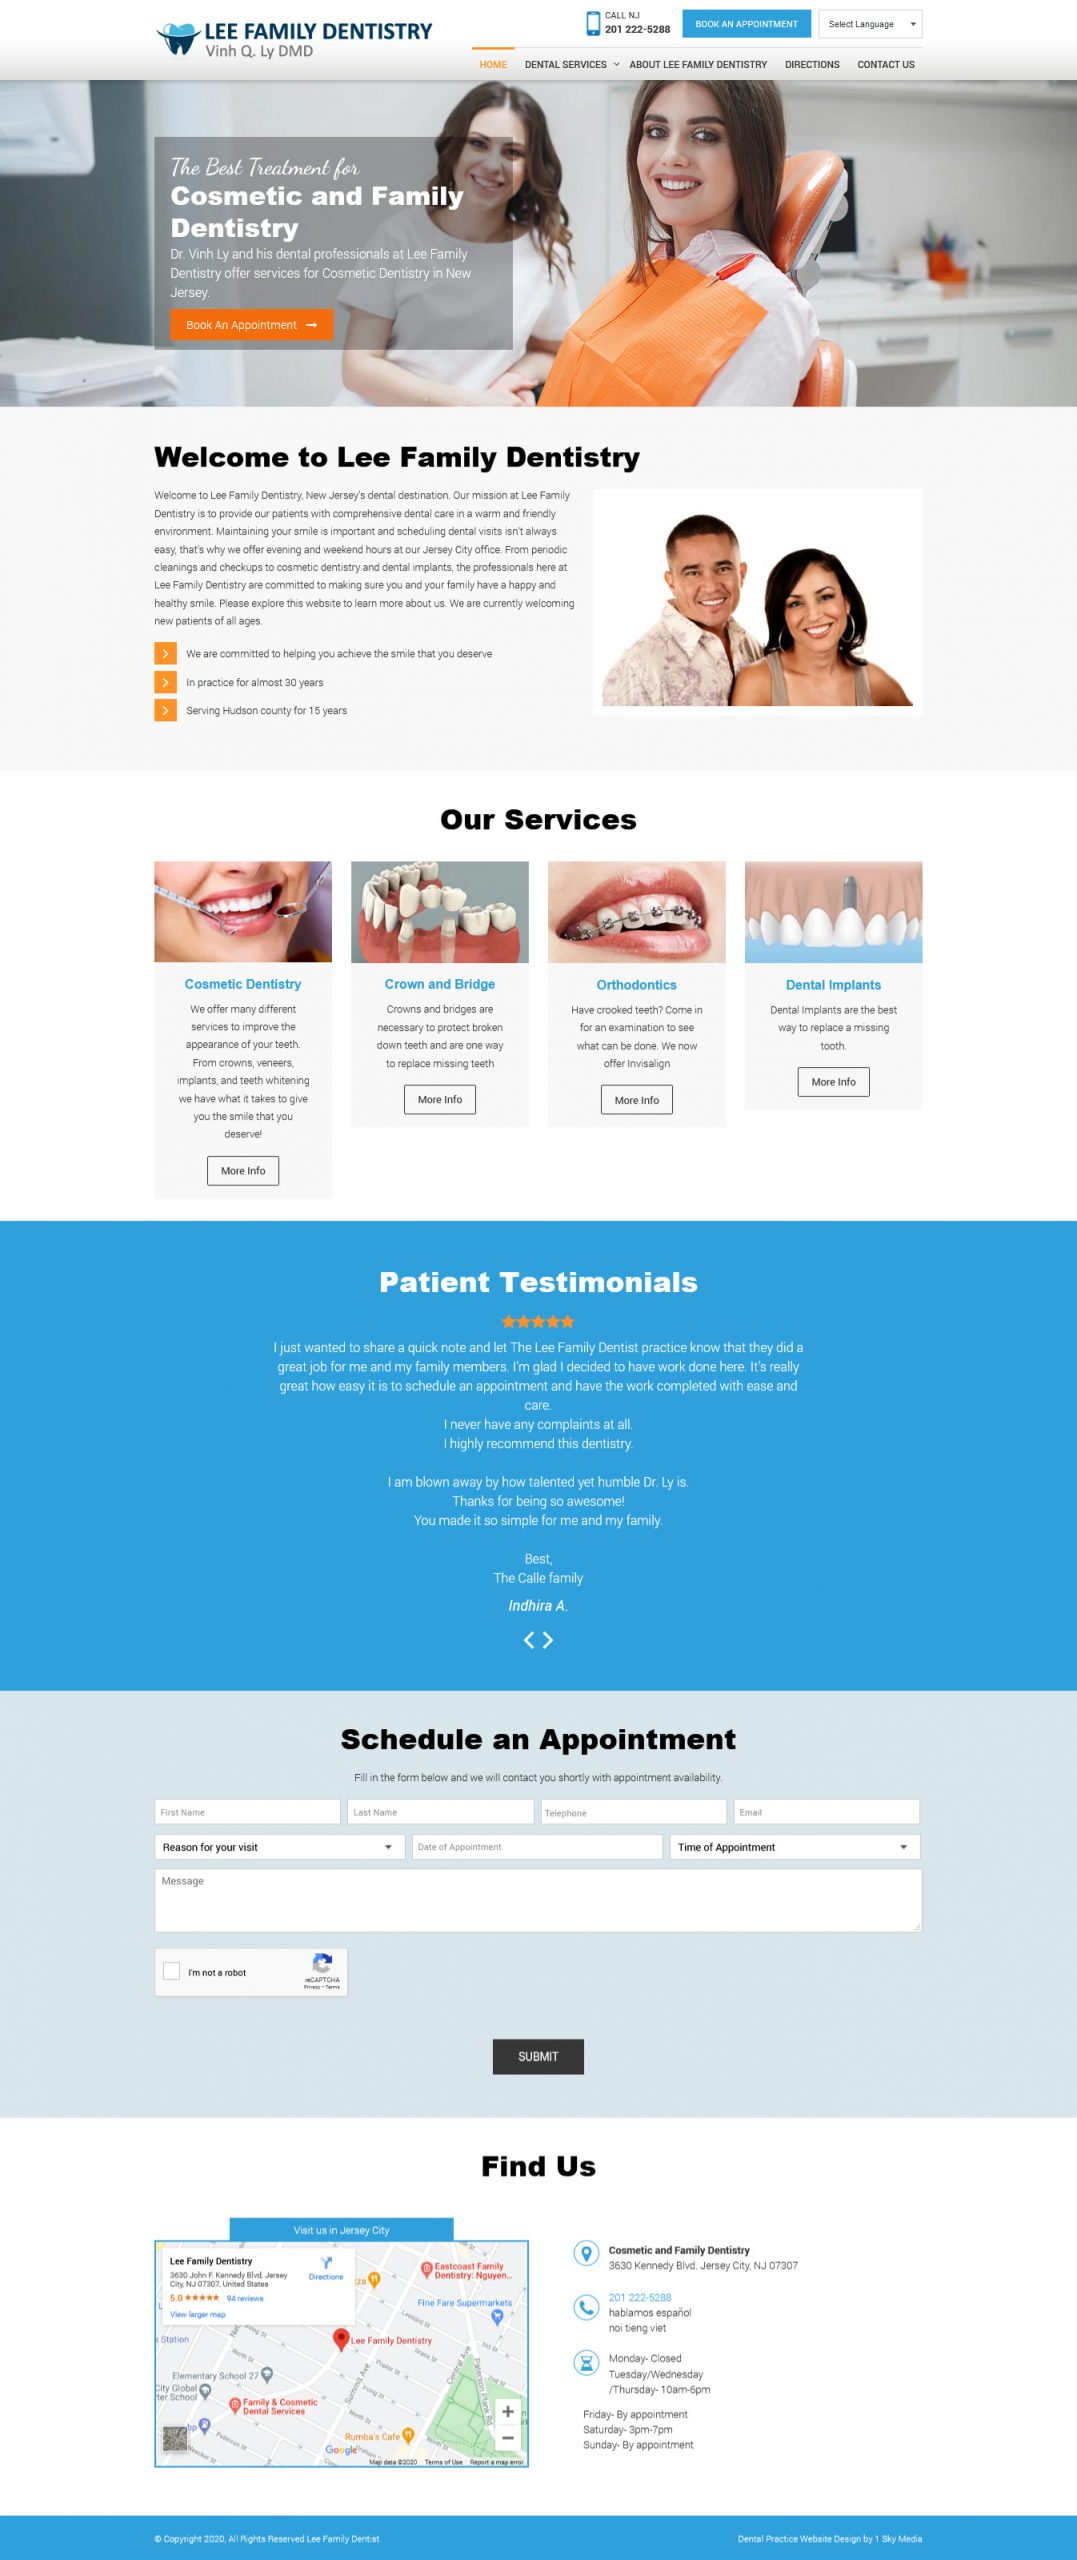 Lee Family Dentistry dentist website design